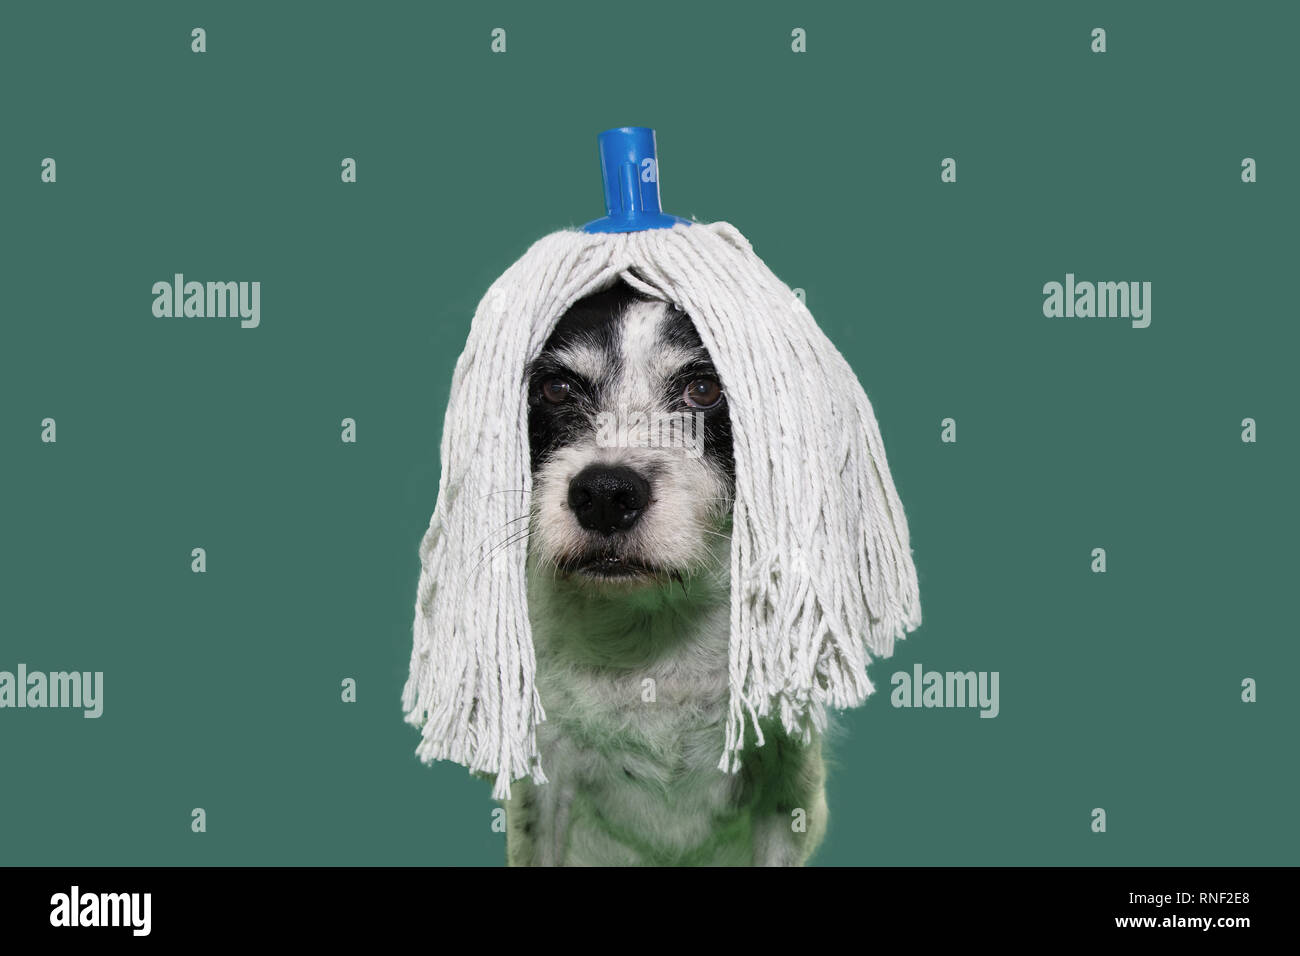 FUNNY DOG DRESSED WITH A MOP WIG FOR CARNIVAL, NEW YEAR OR HALLOWEEN PARTY. ISOLATED SHOT ON GREEN COLORED BACKGROUND. - Stock Image